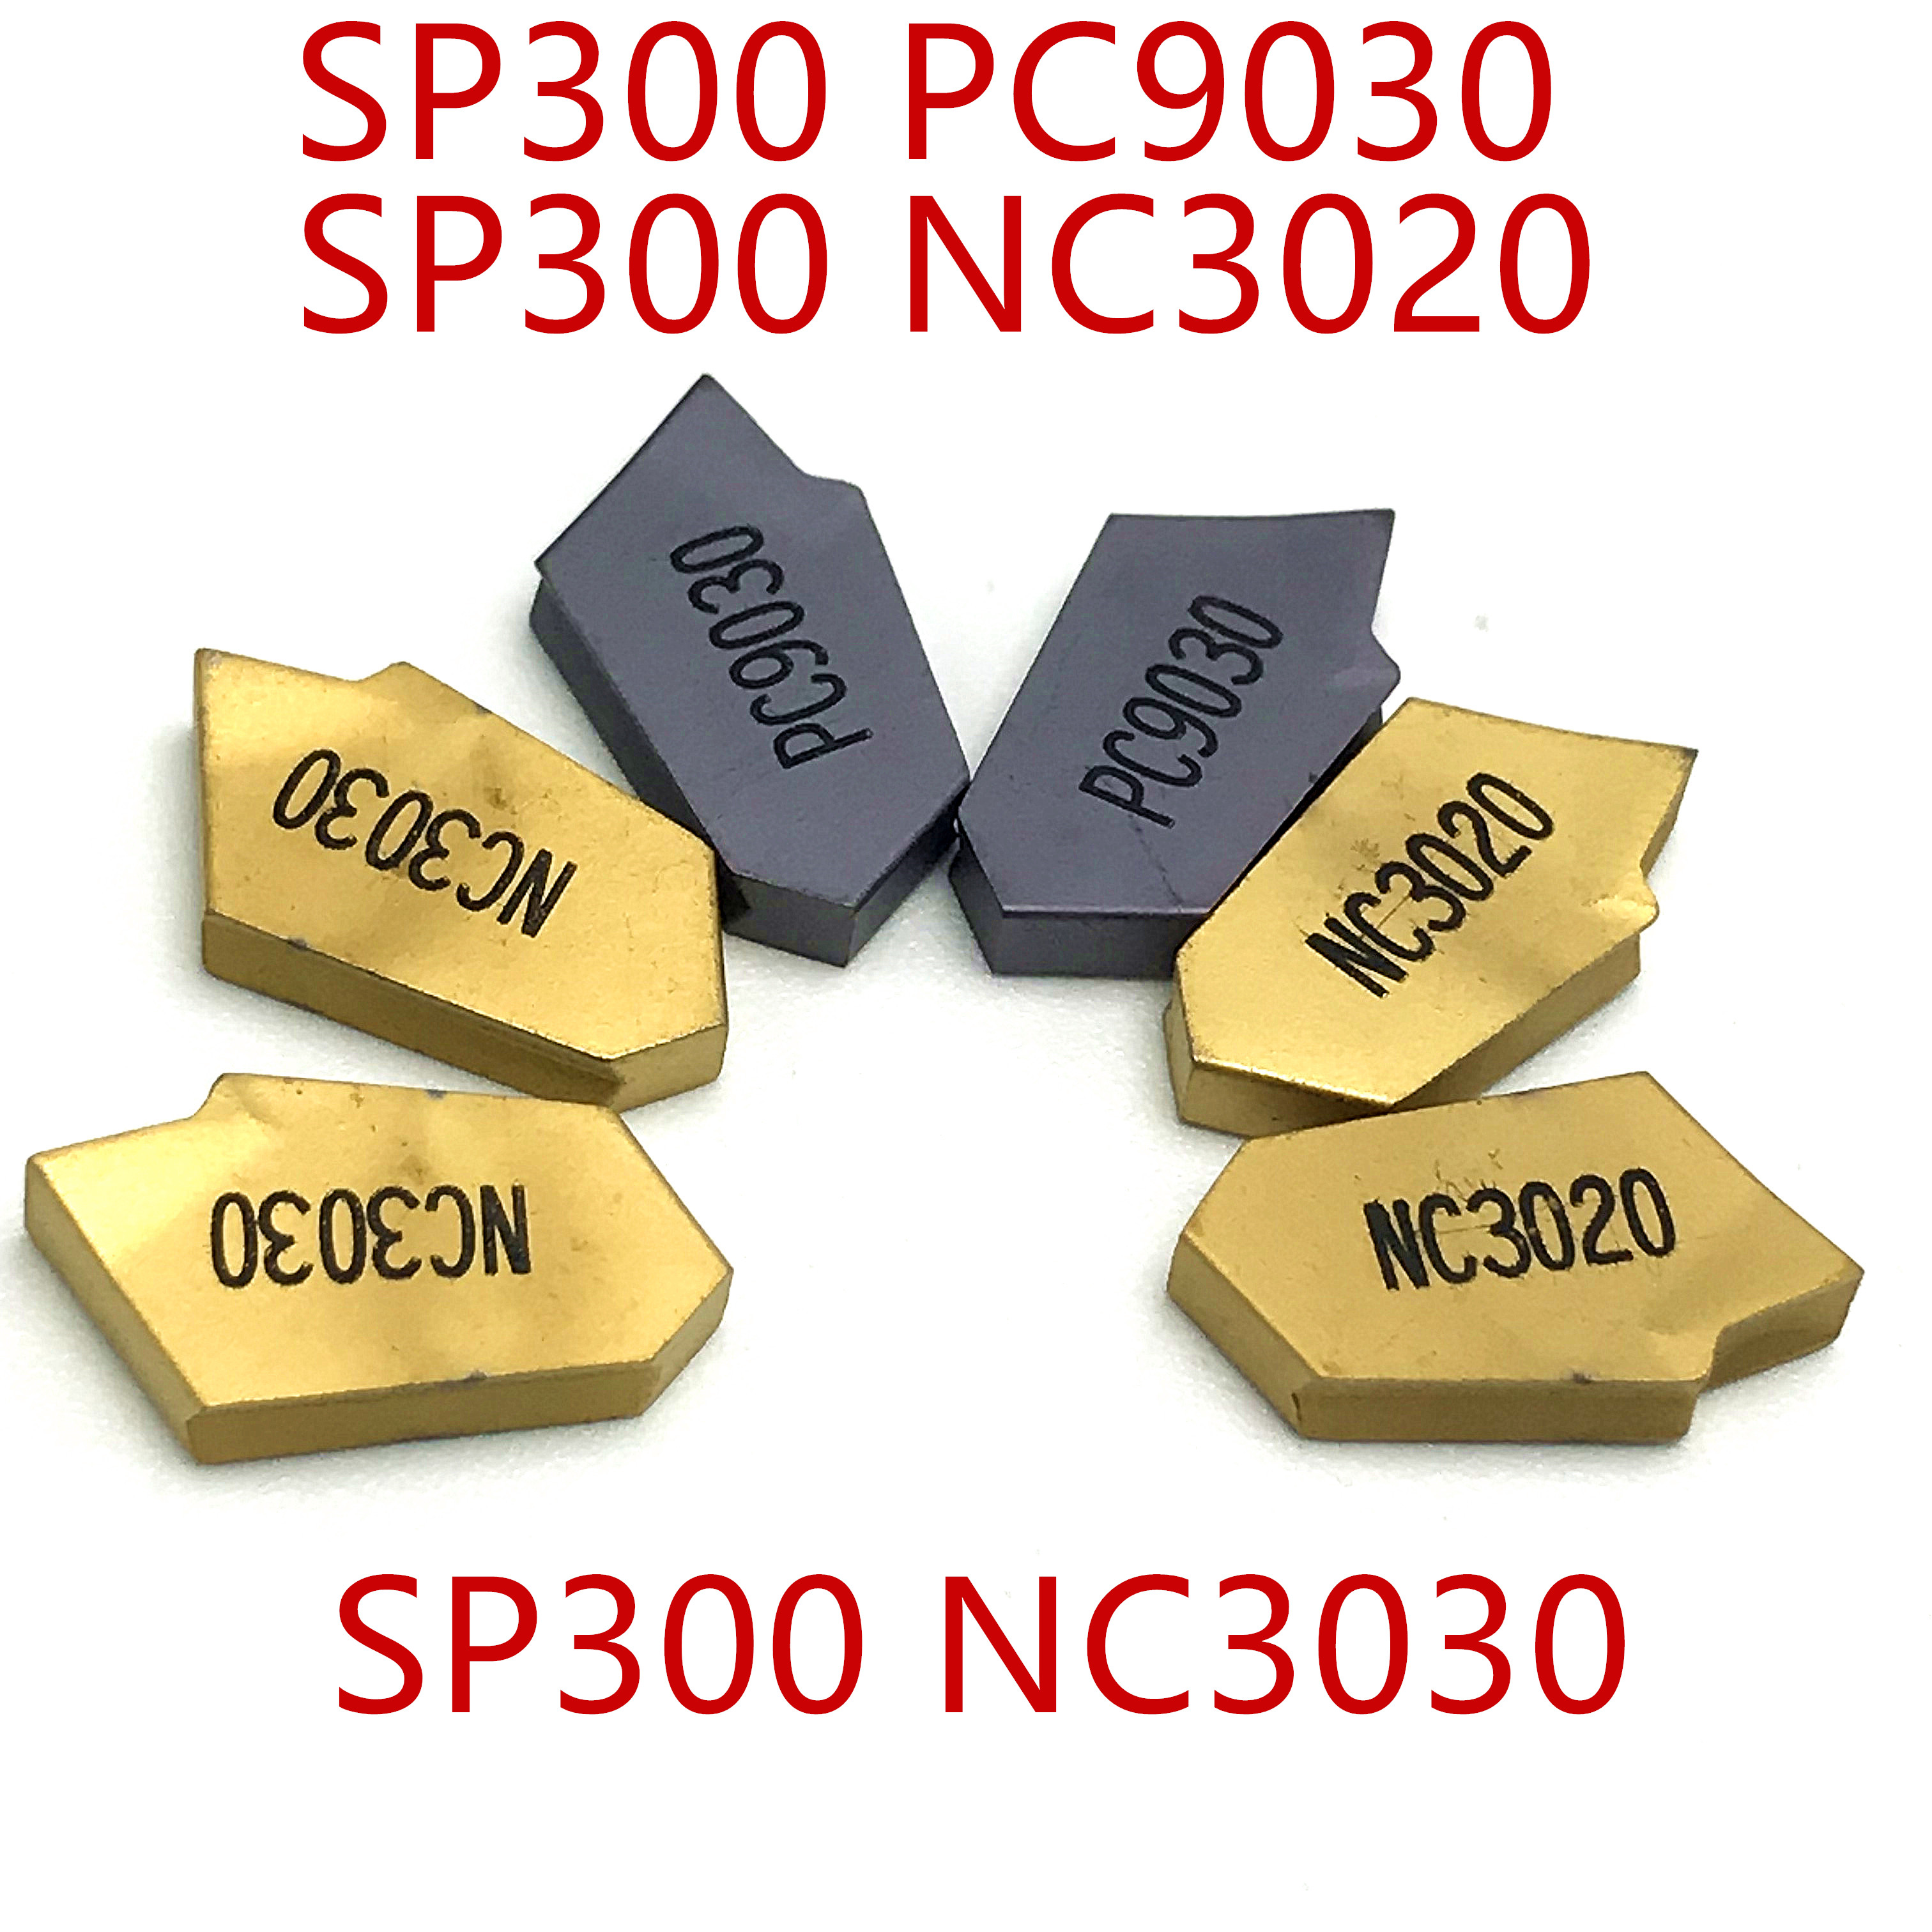 10p SP300 NC3030 grooving carbide inserts machinery tools coated with PVD